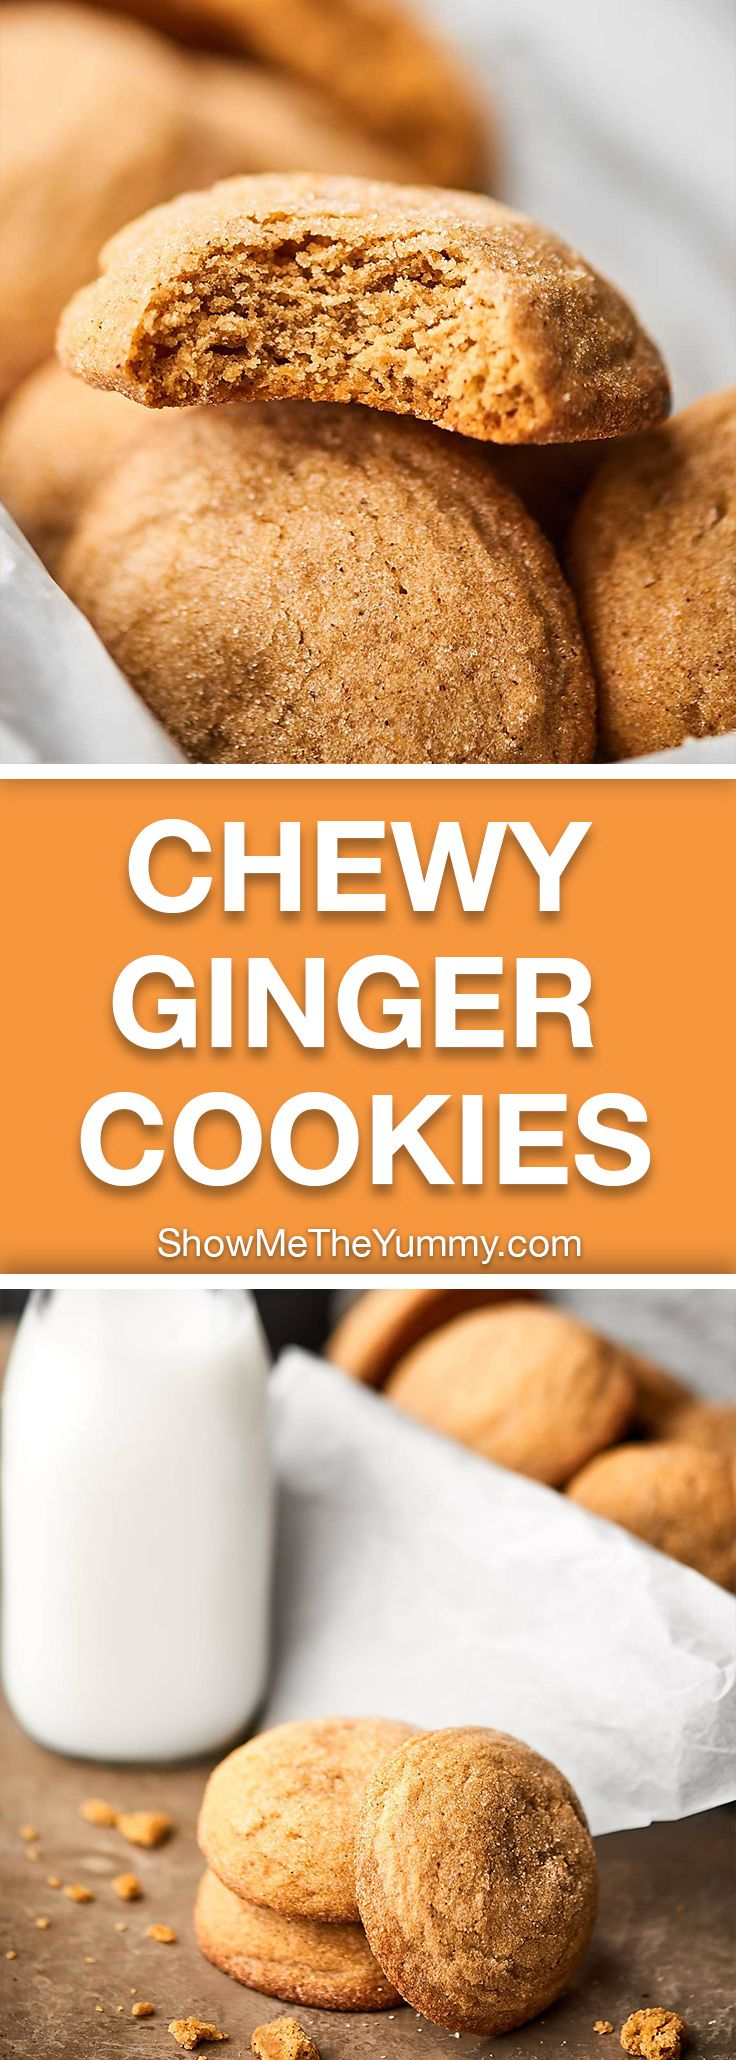 We're making Chewy Ginger Cookies for day TWO of Christmas Cookie and Candy week. These cookies are chewy, a little crunchy, totally fluffy, perfectly spiced, and sweetened with maple syrup! showmetheyummy.com